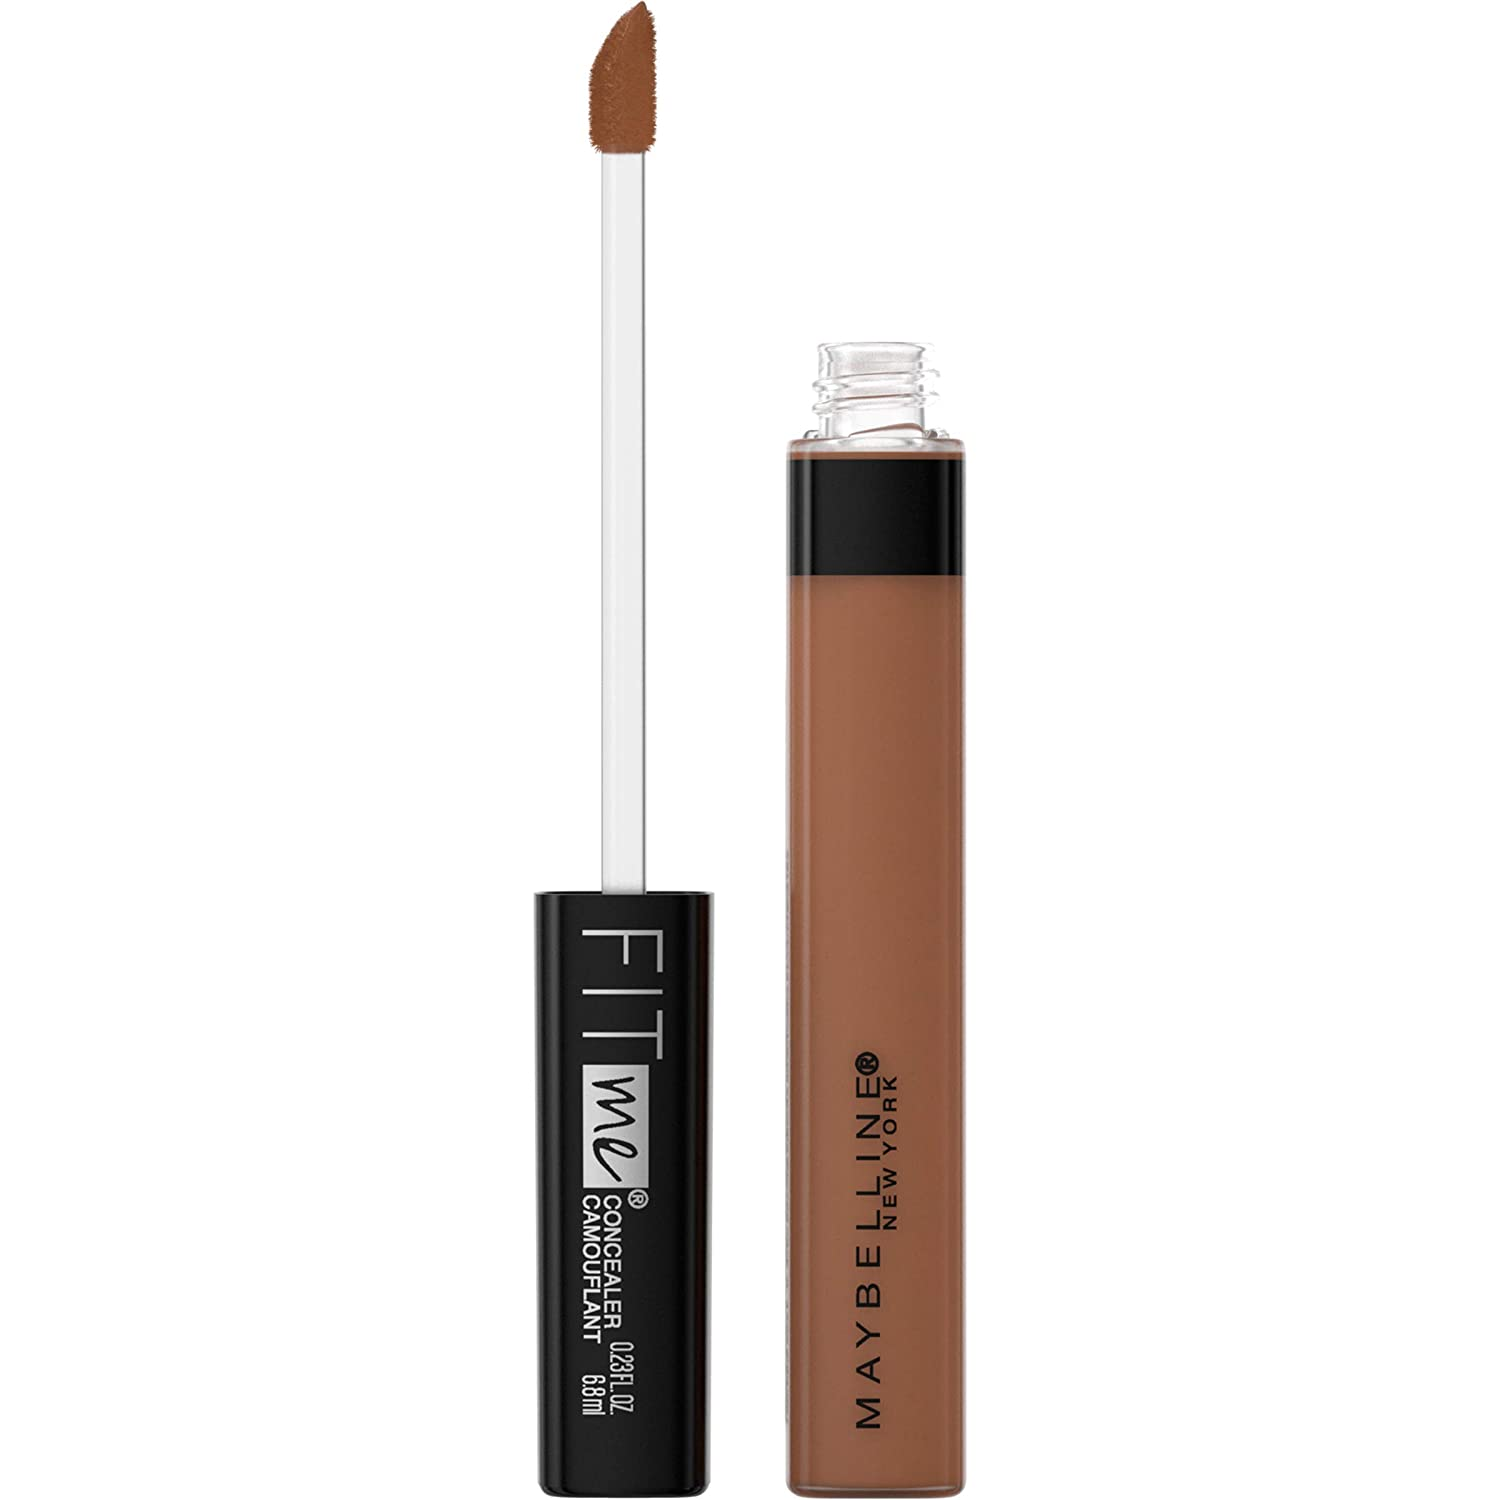 Maybelline fit me concealer amazon